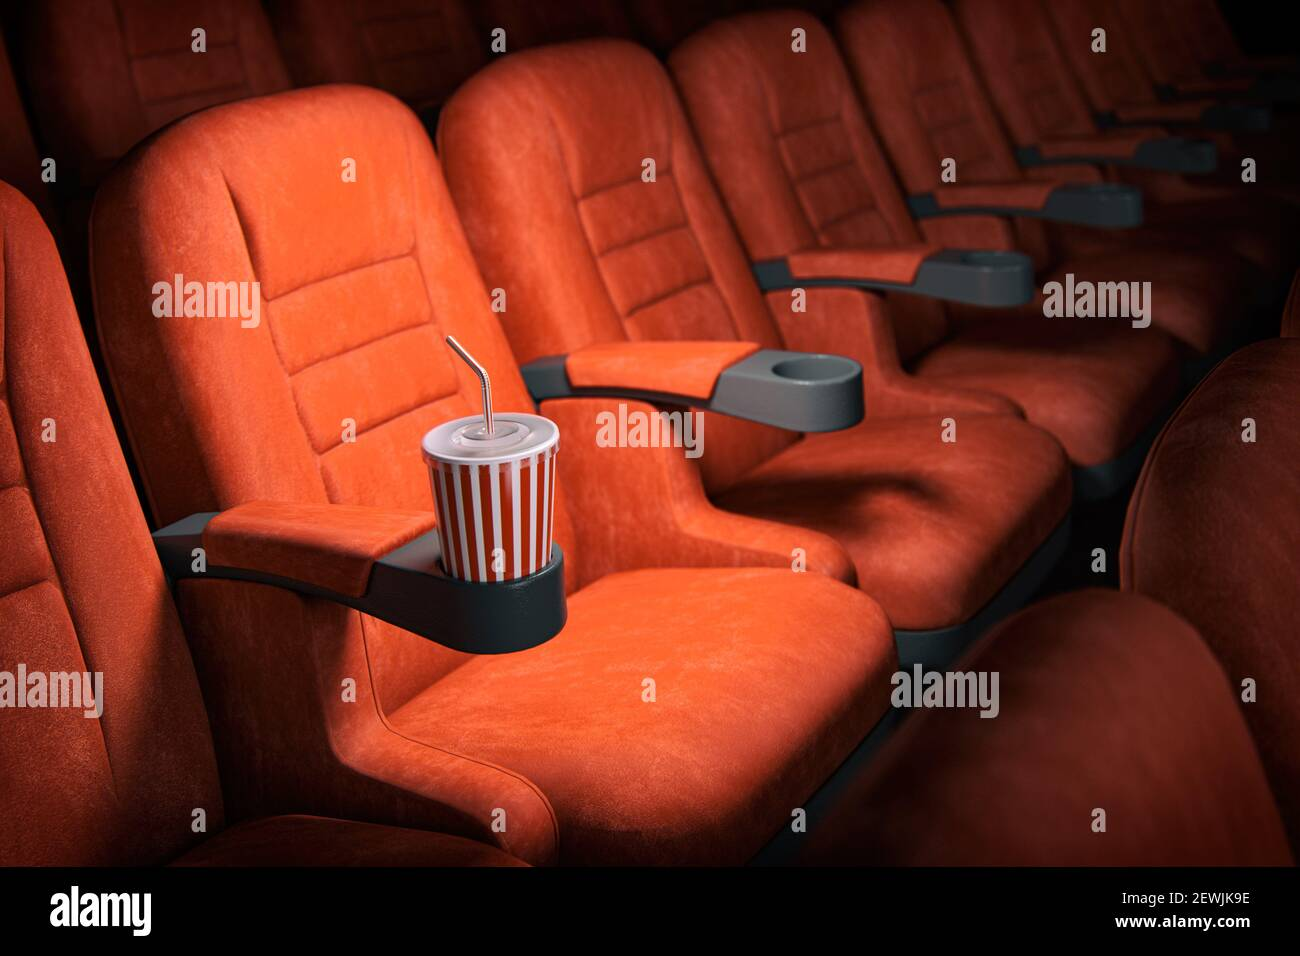 Cinema movie theater concept background. Red cinema seats and cola in empty theater. 3d illustration. Stock Photo